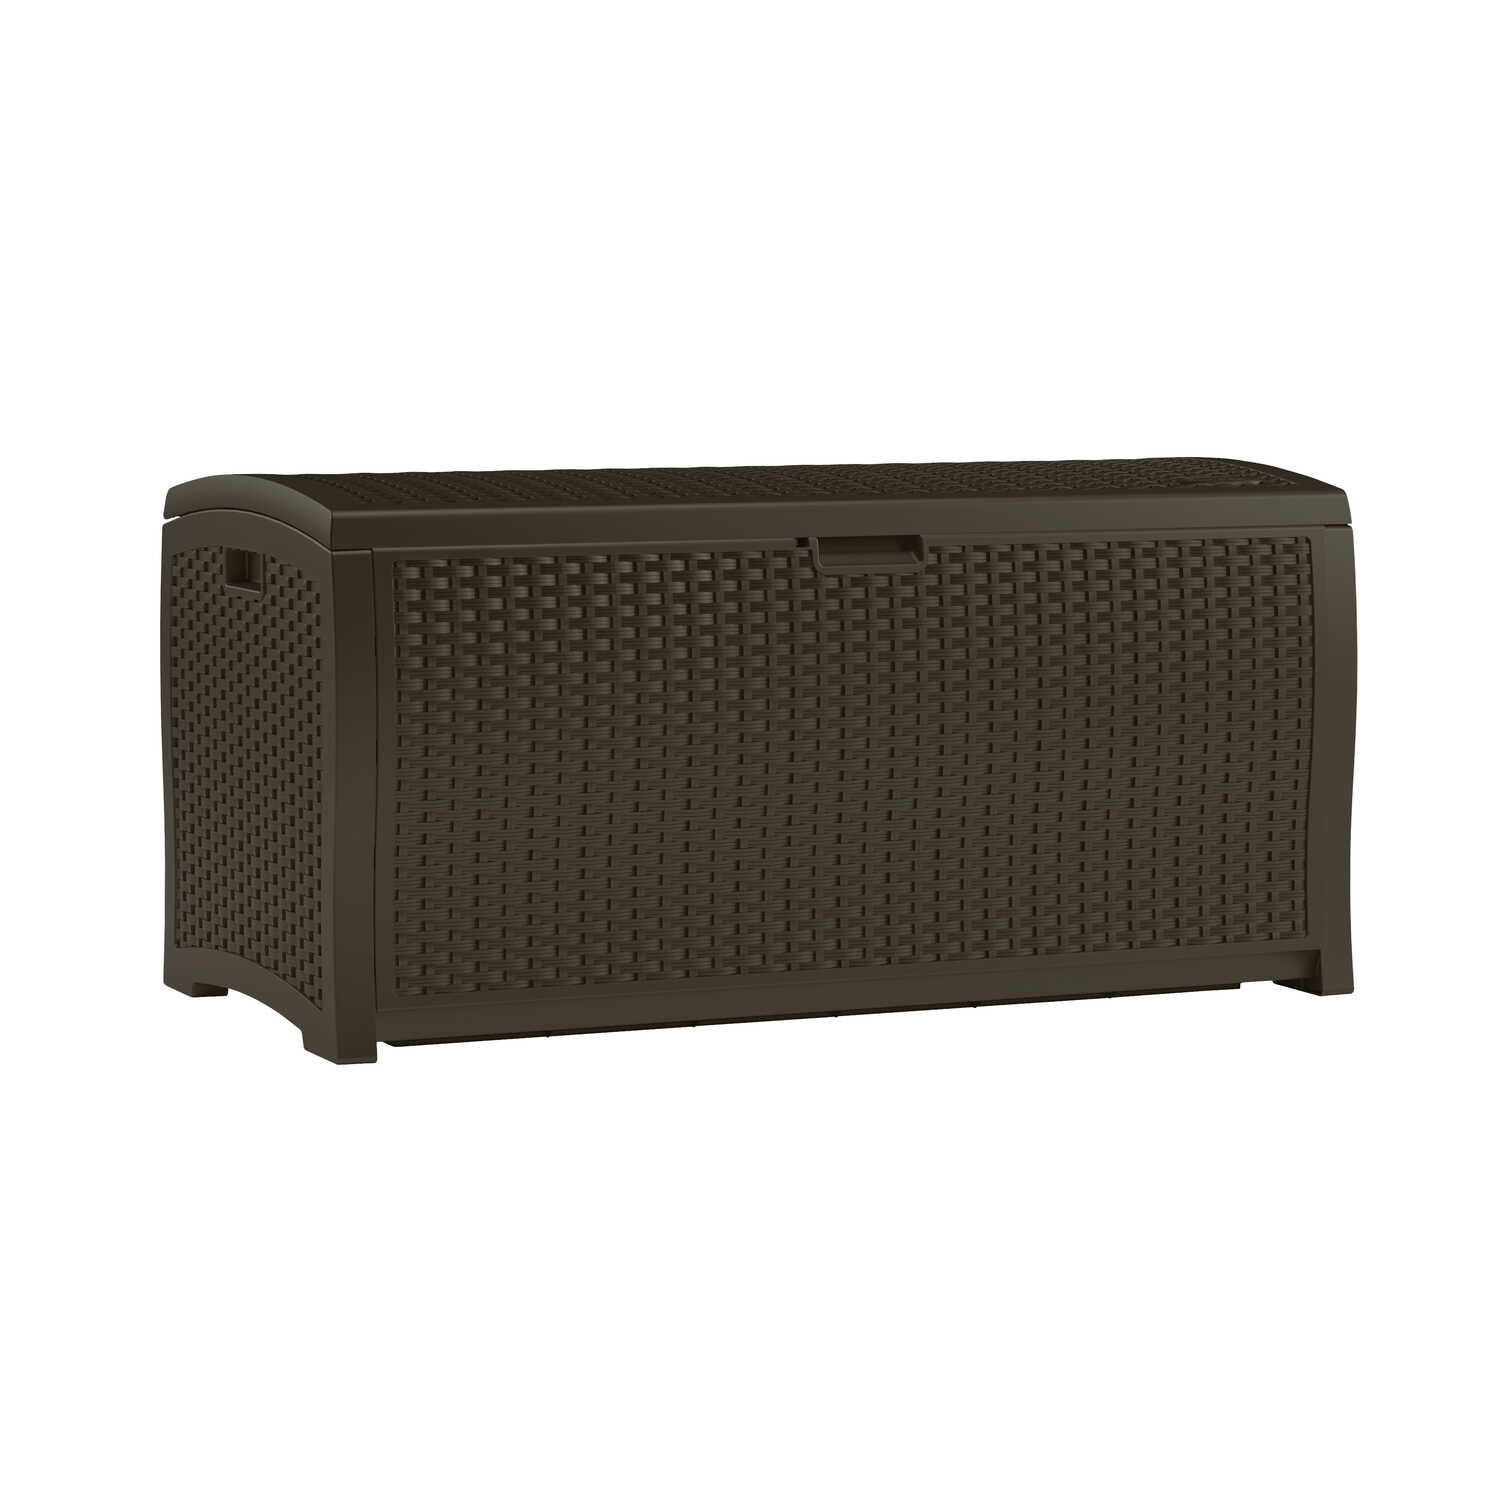 Suncast  Resin Wicker  25-1/2 in. H x 50 in. W x 25.5 in. D Brown  Deck Box